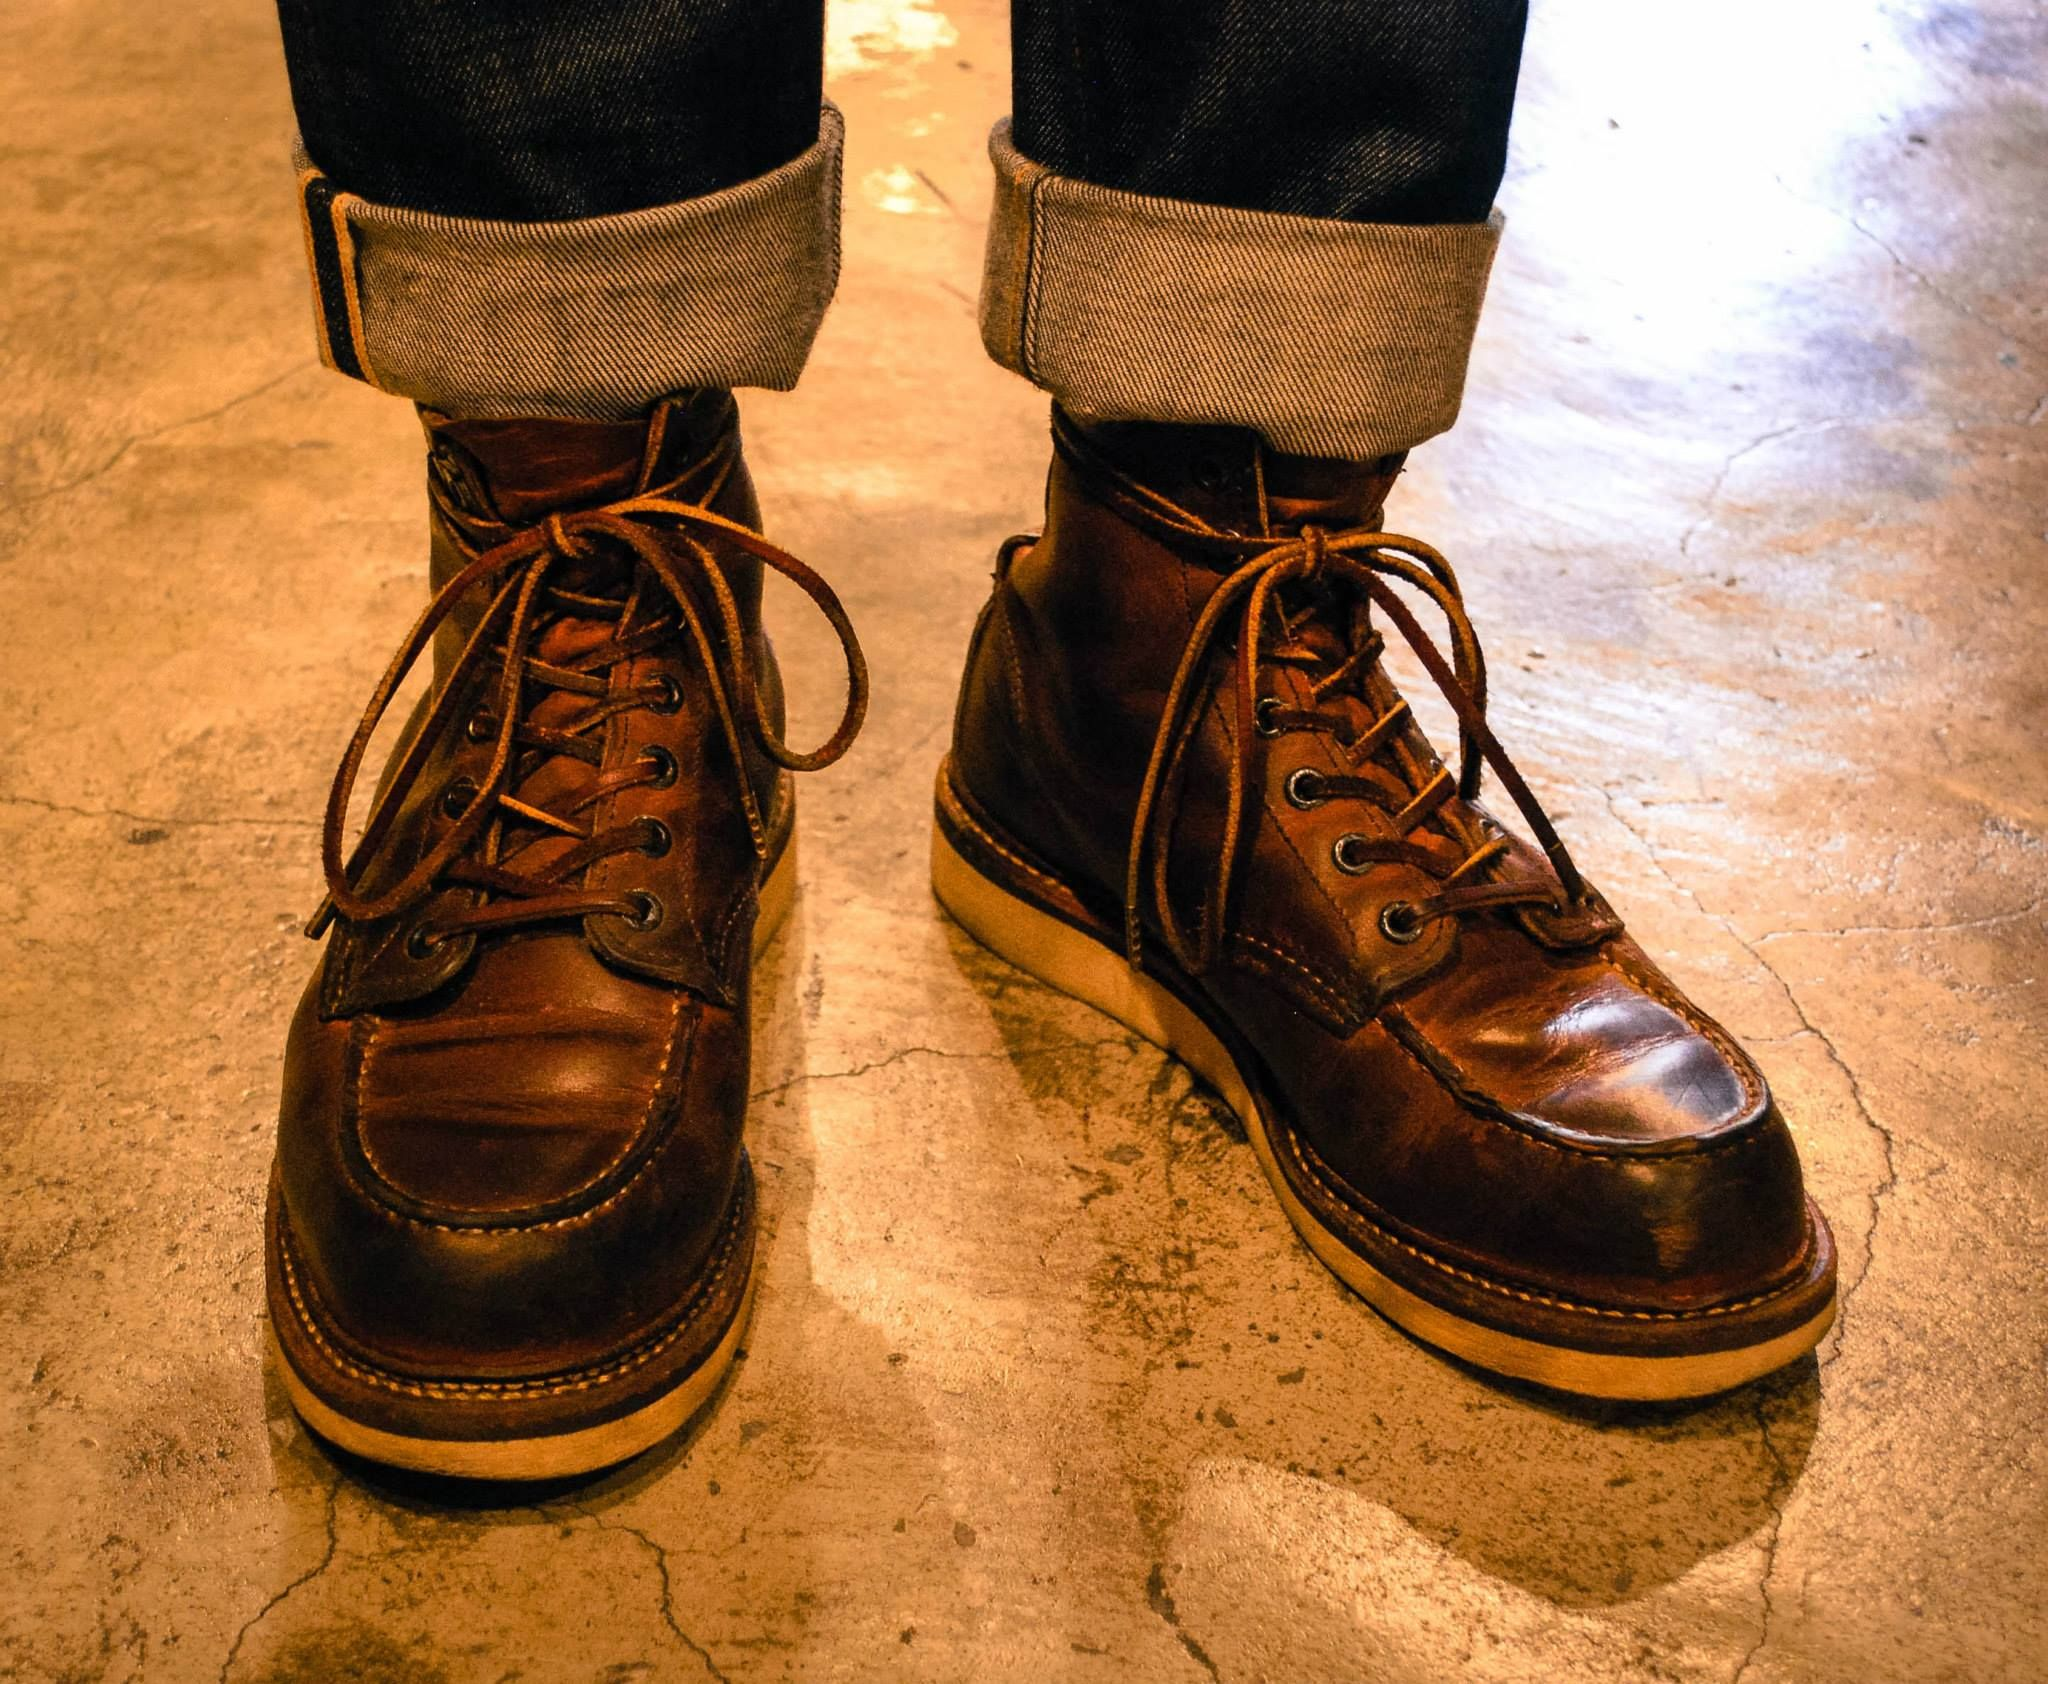 RED WING 2015FW NEW MODEL 【LINEMAN BOOTS】 | Red Wing | Pinterest